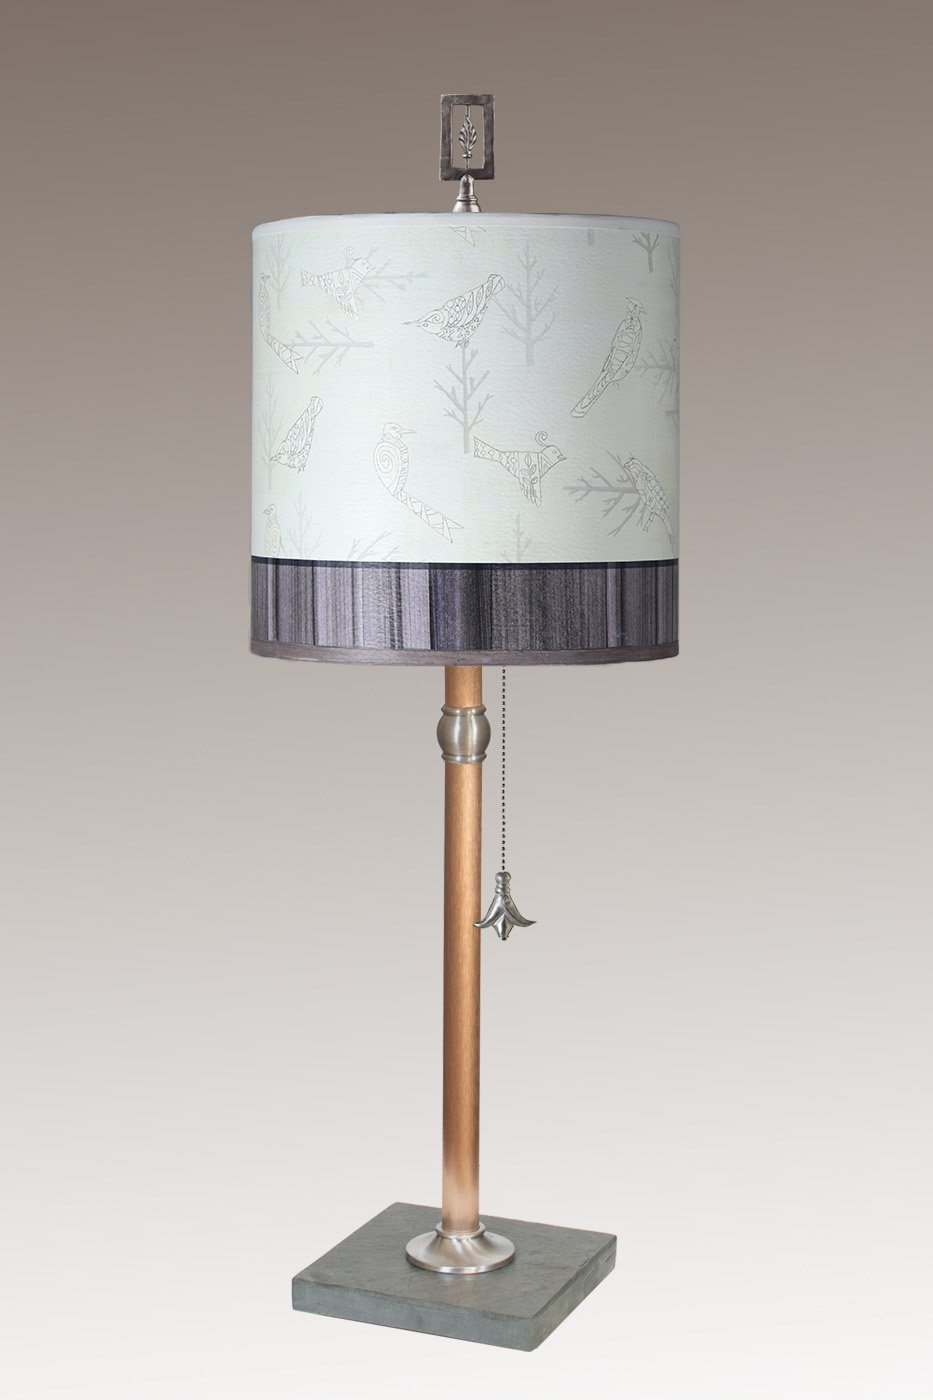 Copper Table Lamp with Medium Drum Shade in Perch